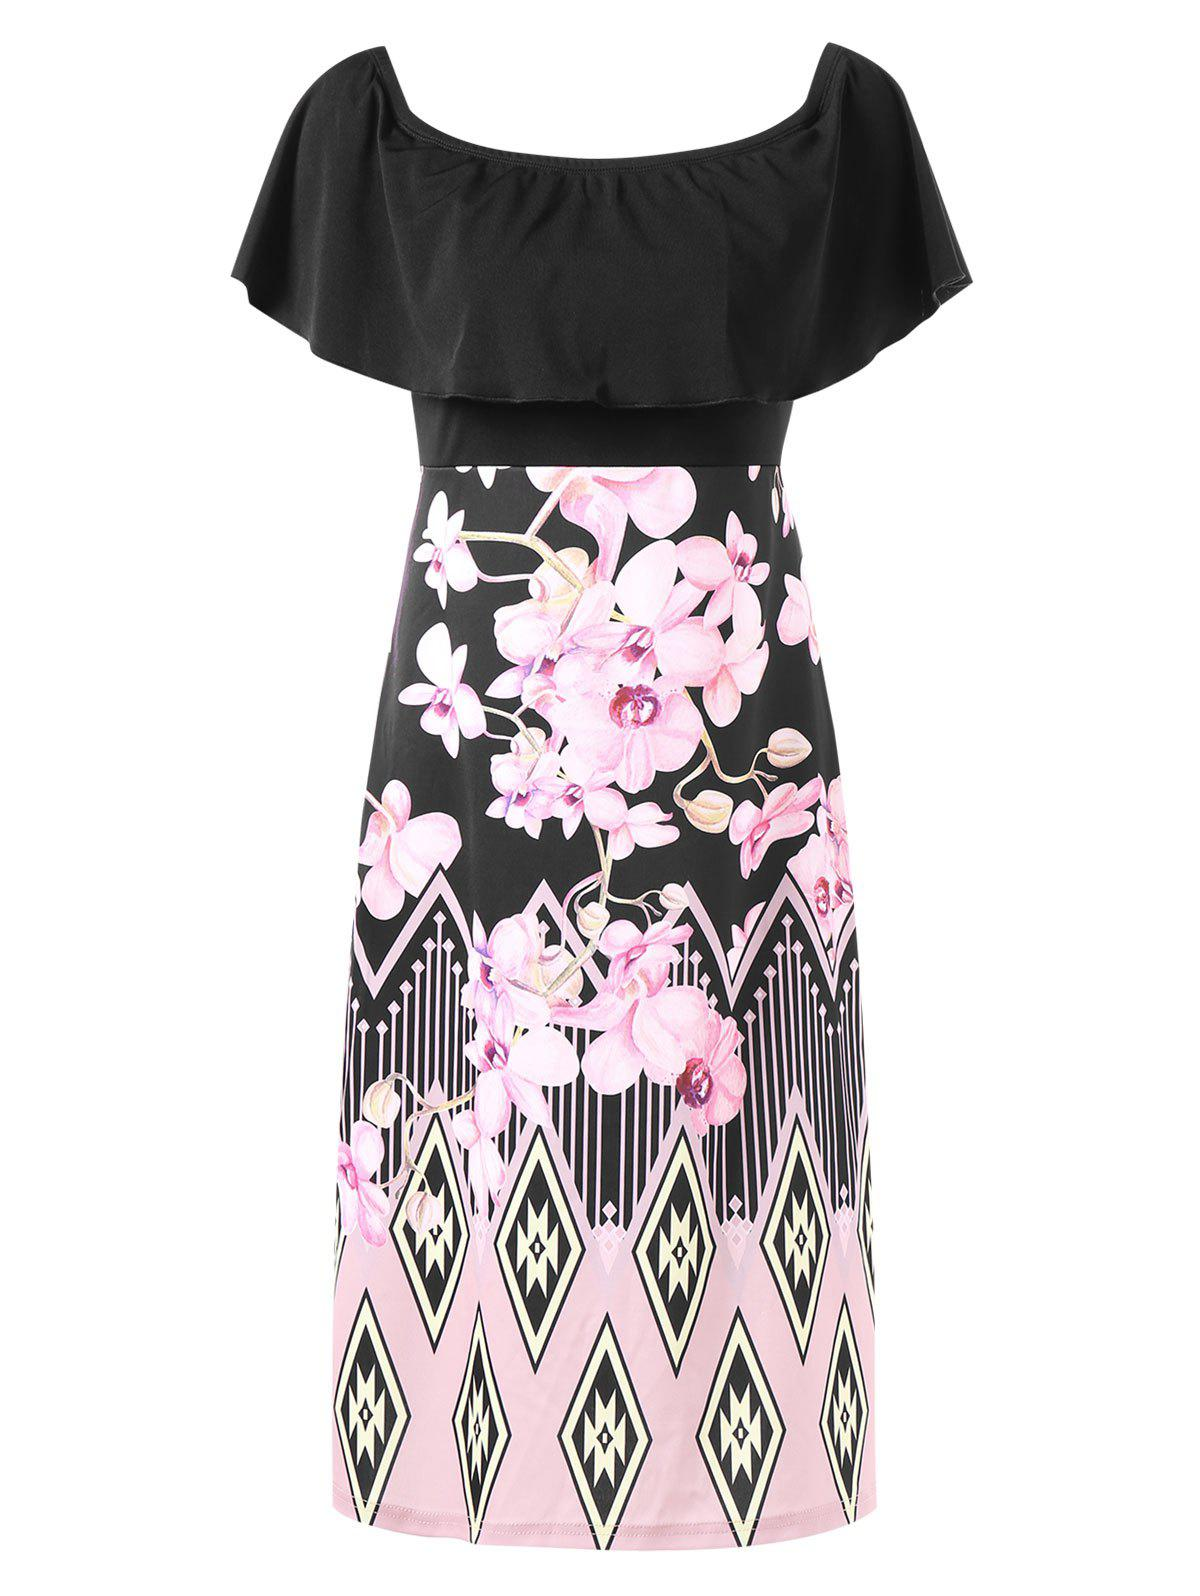 Floral Print High Waist Fold Over Dress - BLACK XL